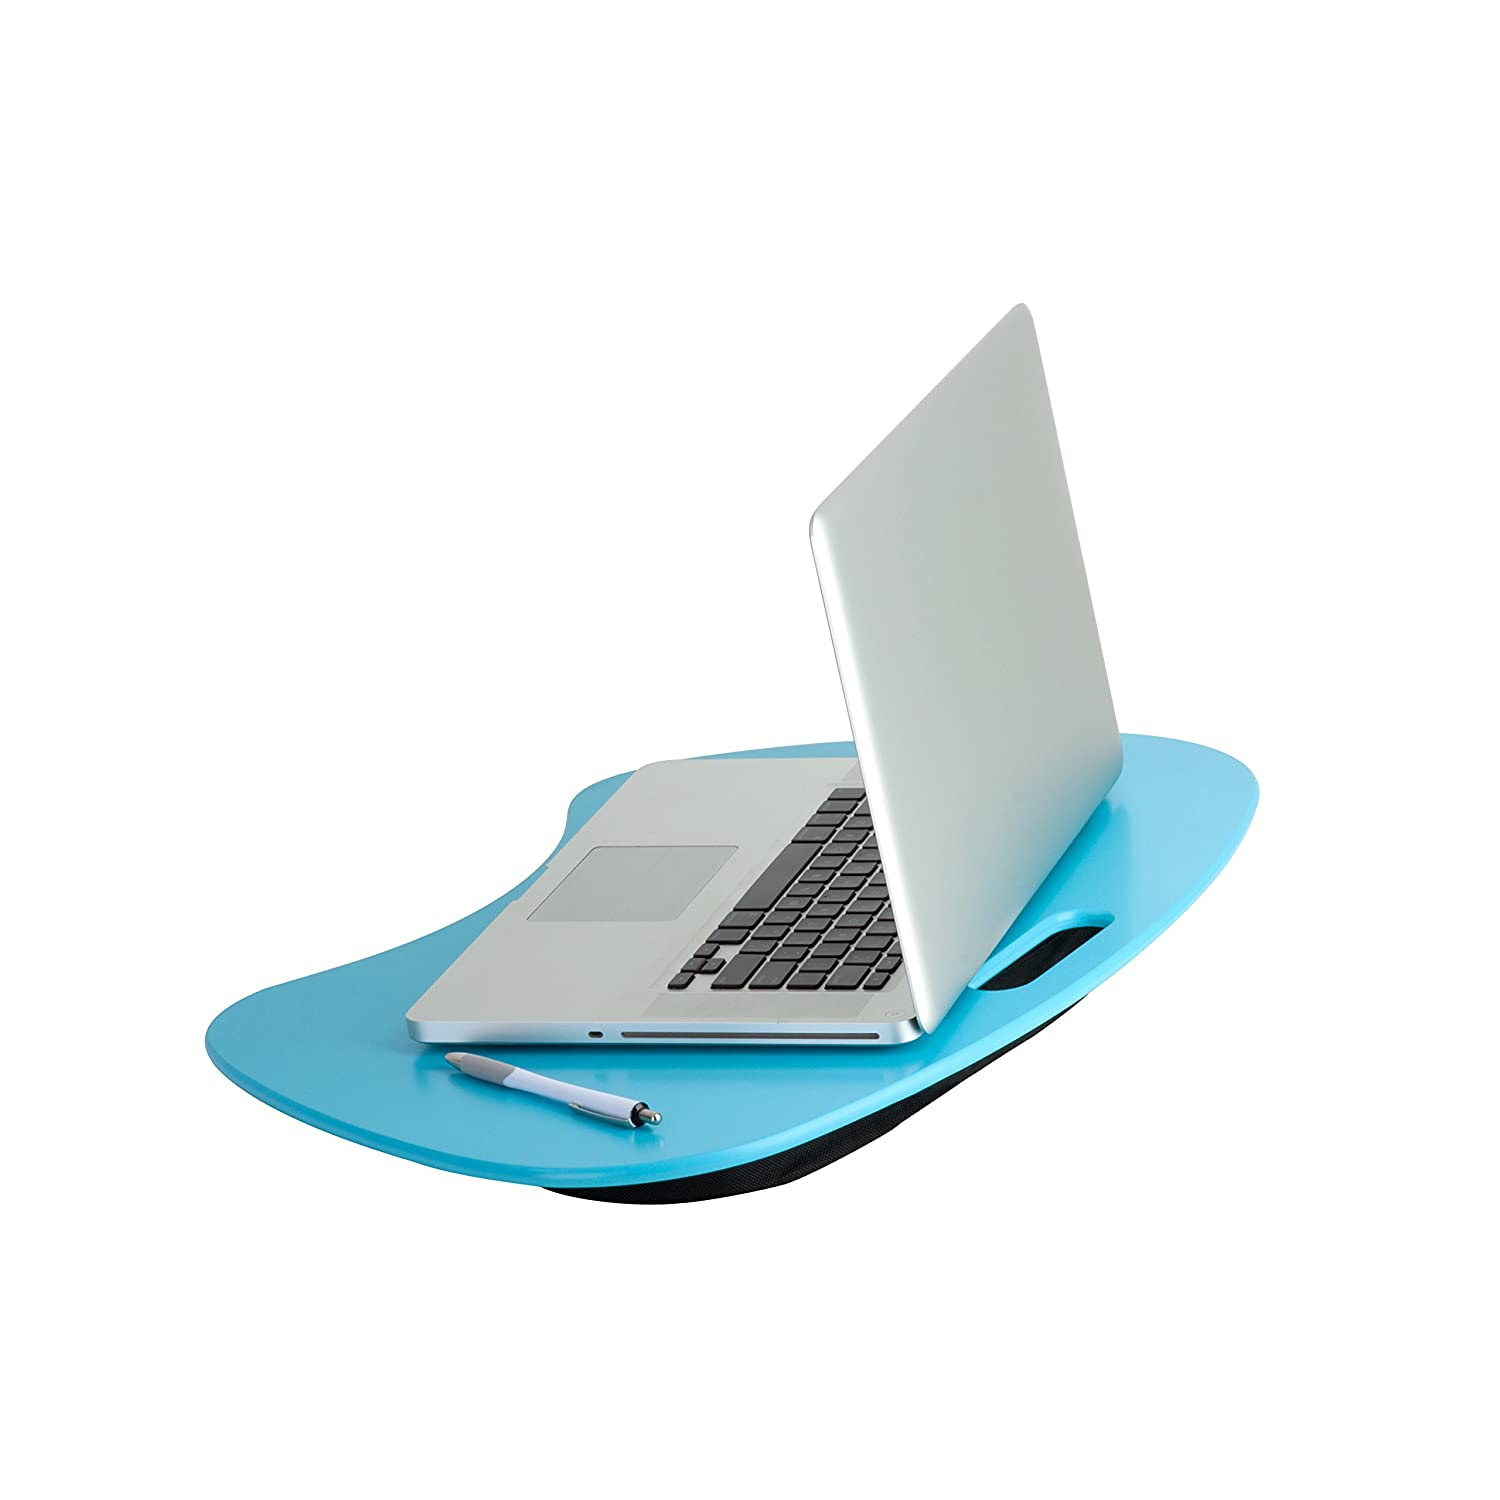 Honey-Can-Do TBL-03539 Portable Laptop Lap Desk with Handle, Blue, 23 L x 16 W x 2.5 H